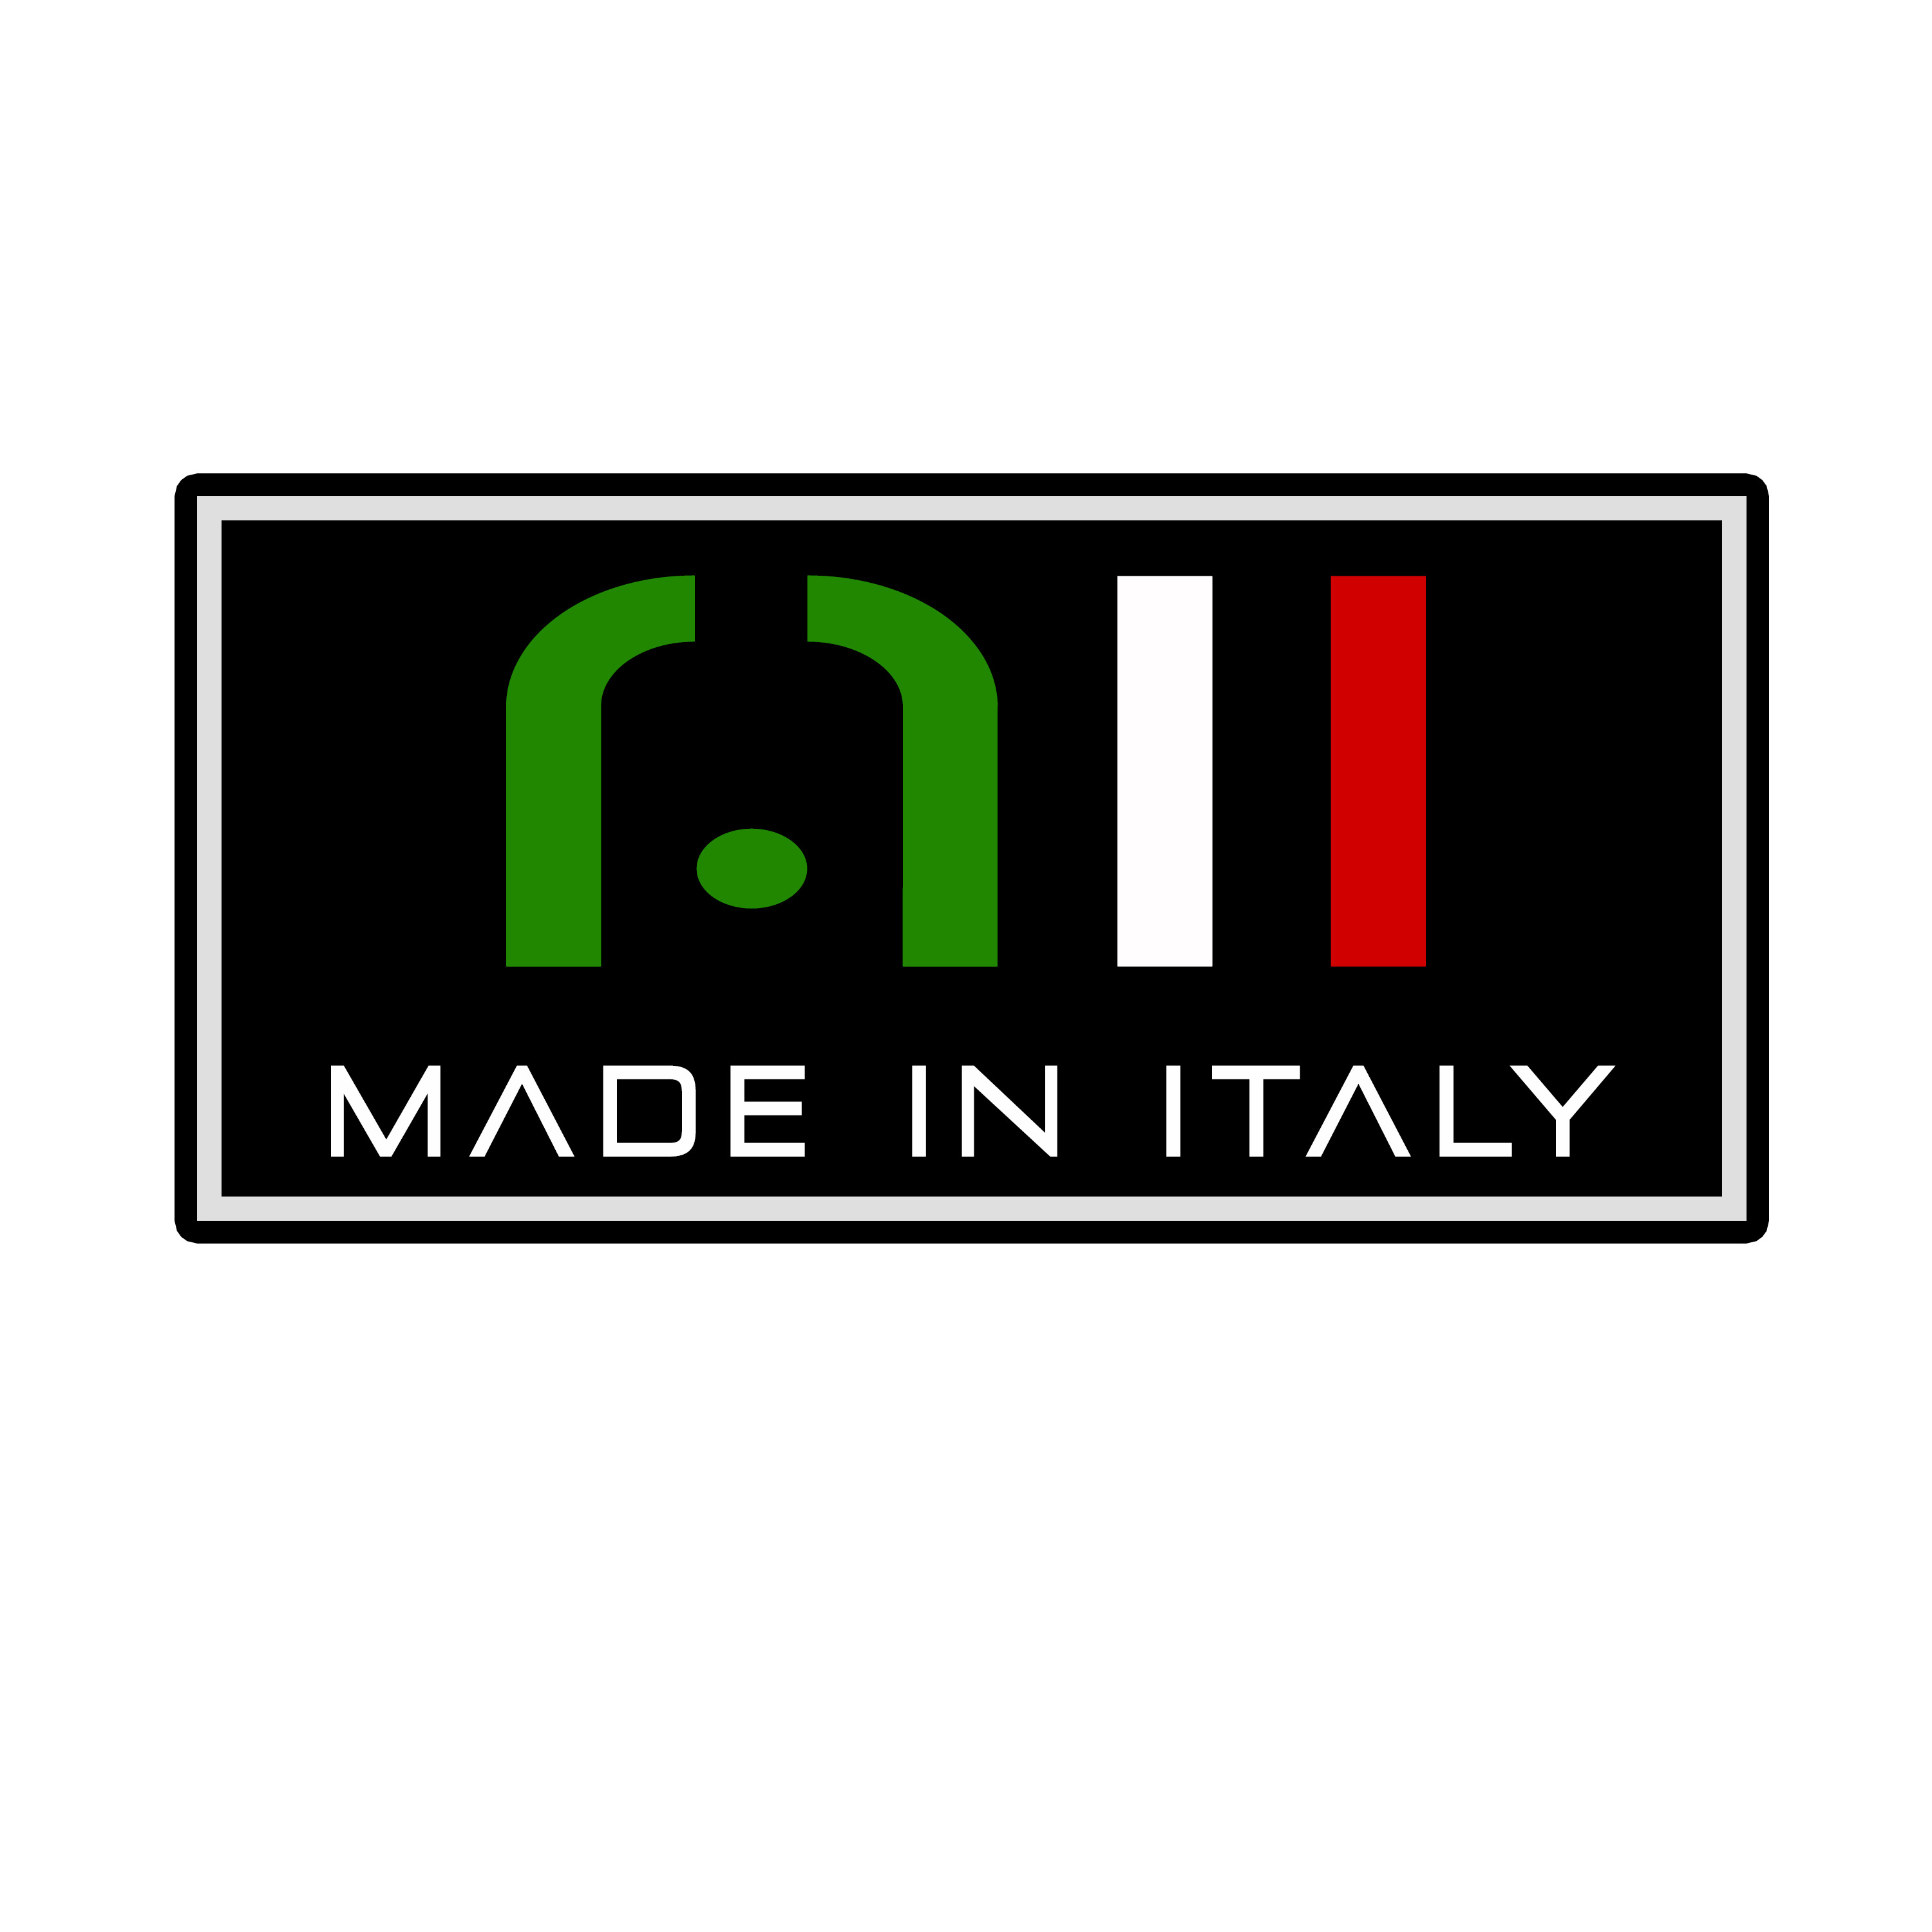 MII MADE IN ITALY